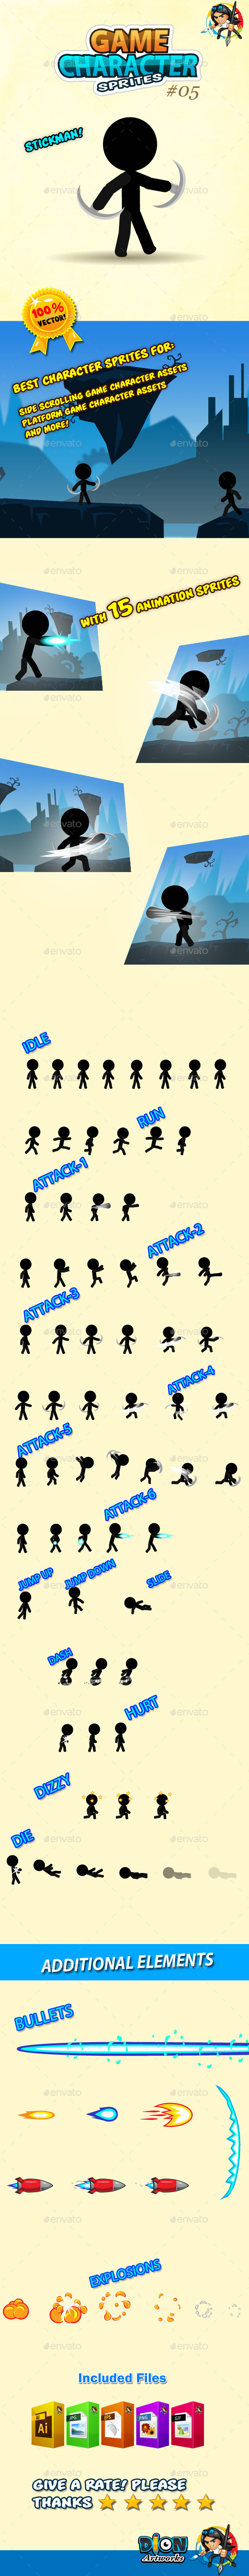 GraphicRiver Stickman Character Sprites 05 10697090